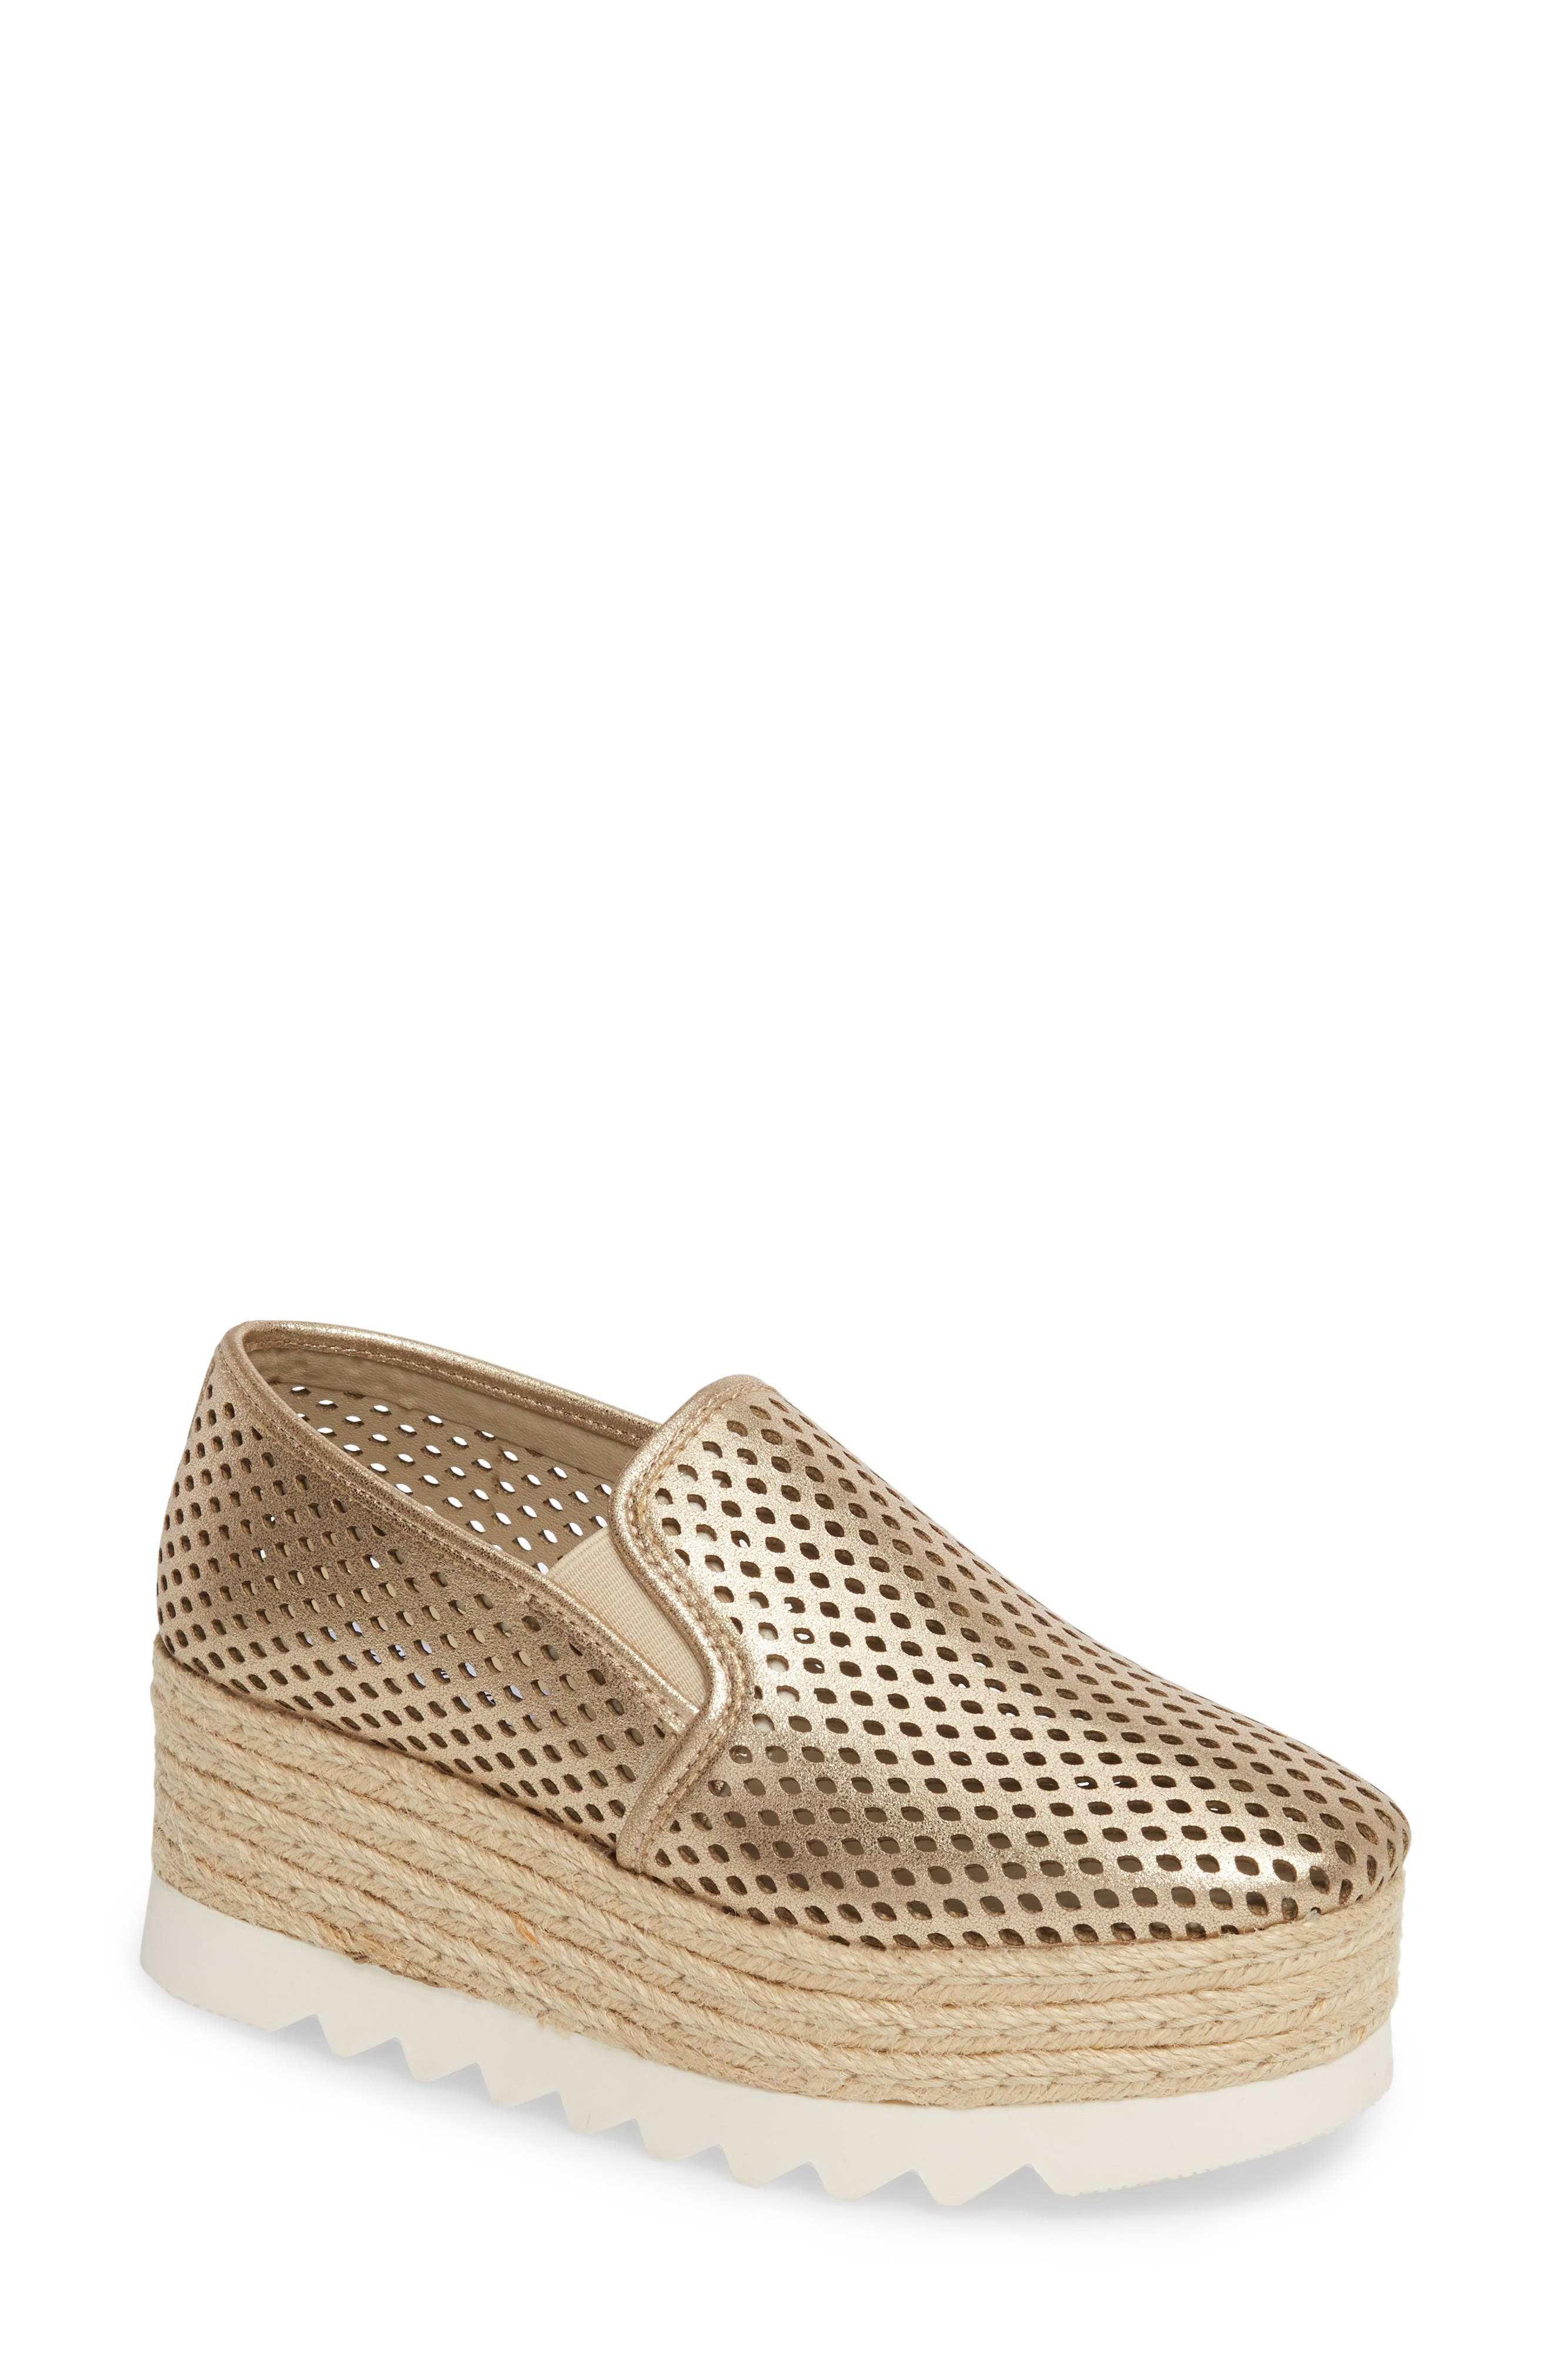 Kara Perforated Platform Loafer,                         Main,                         color, Platinum